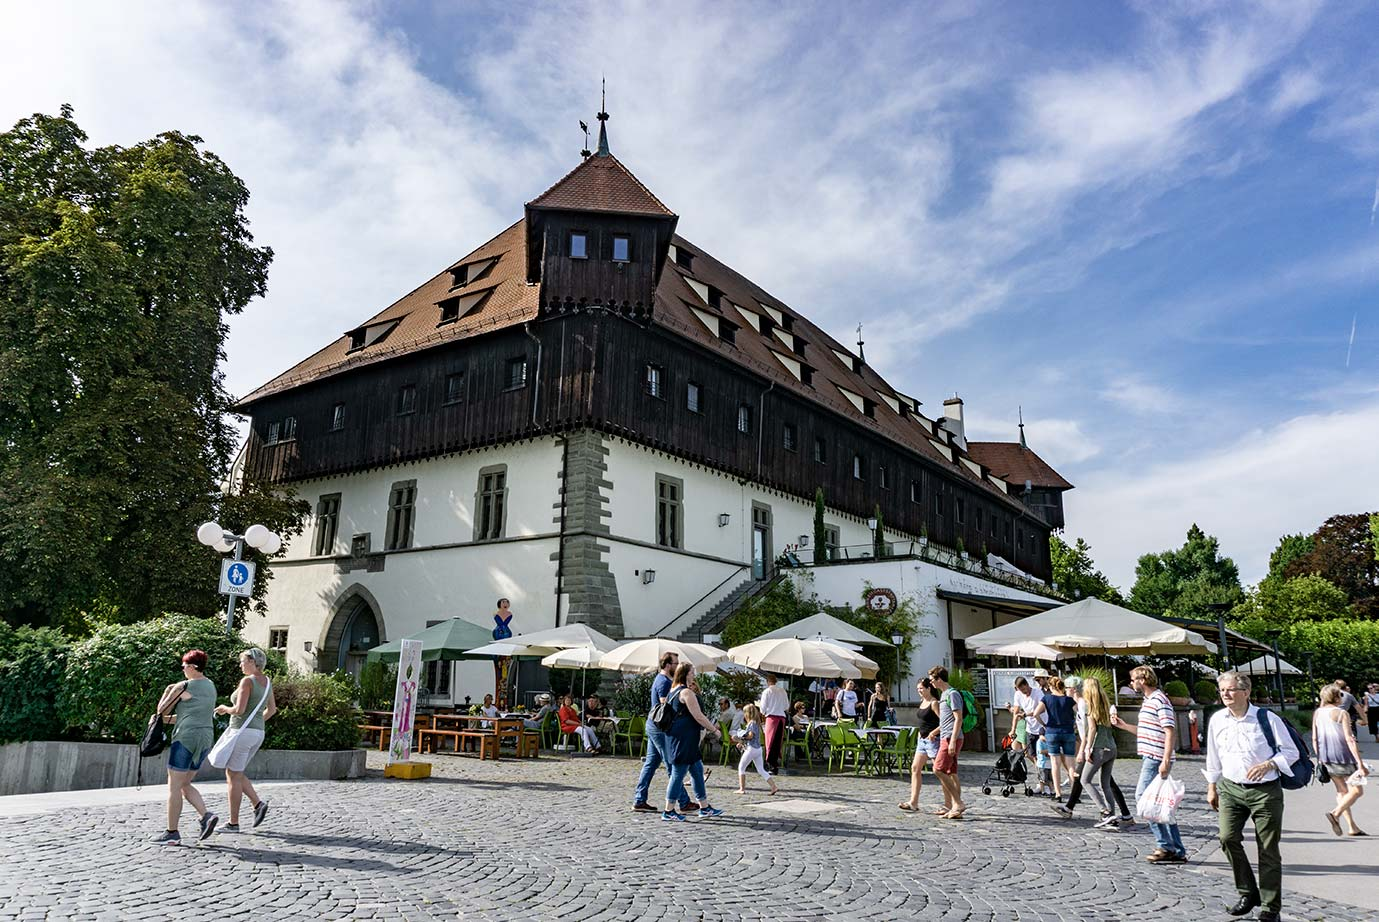 A medieval building in Konstanz, Germany that is half wood and half plaster. There are tables and umbrellas outside of the building.